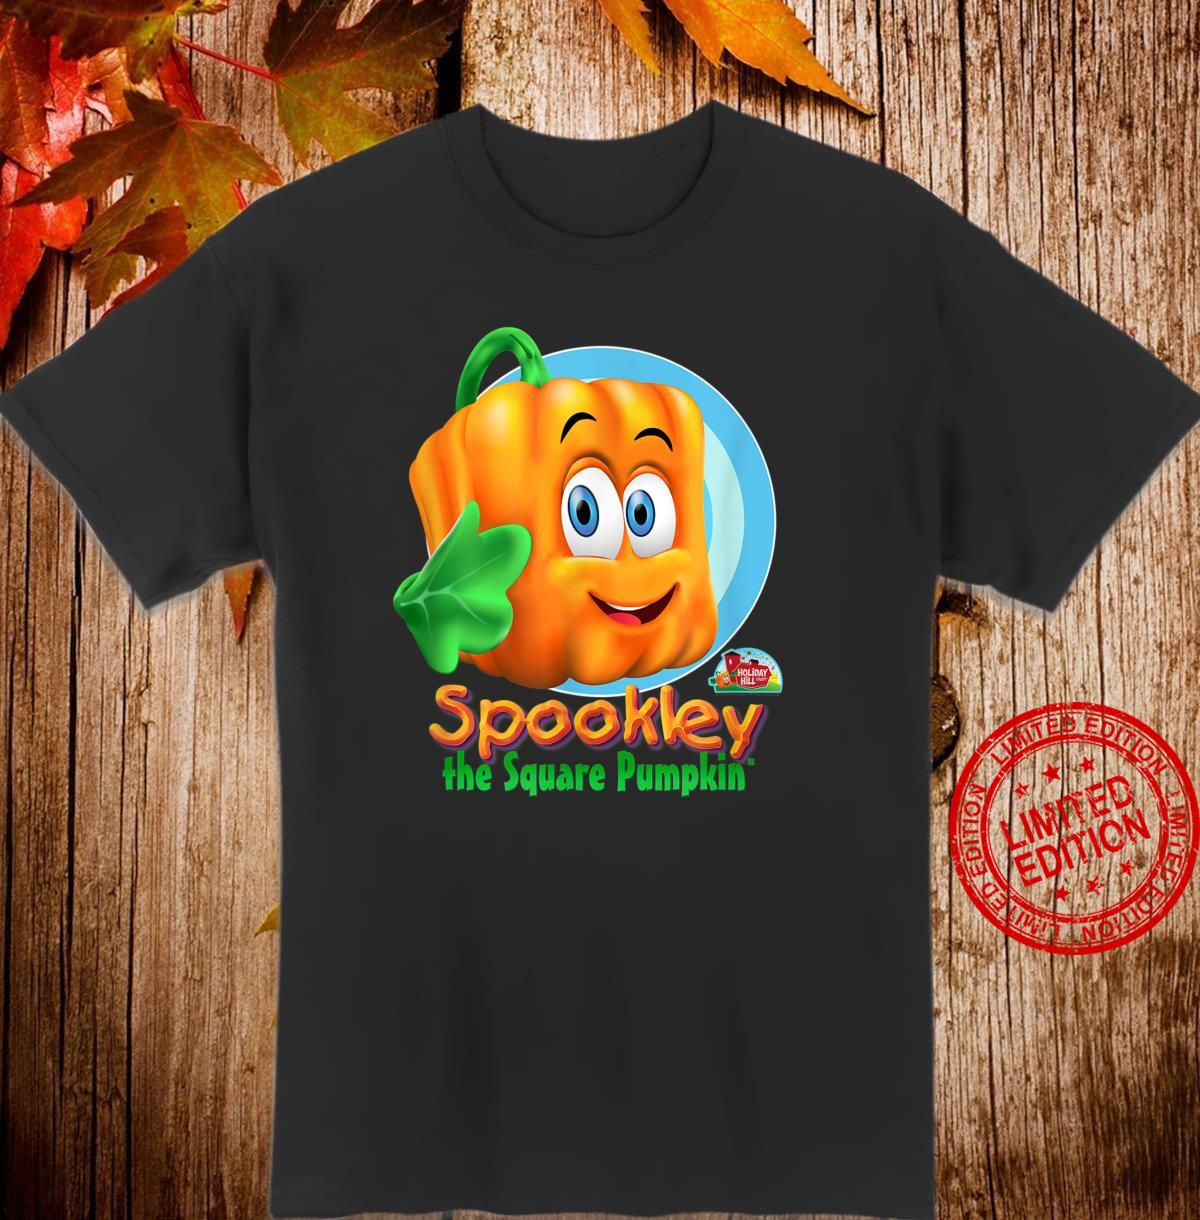 Spookley the Square Pumpkin Character Shirt